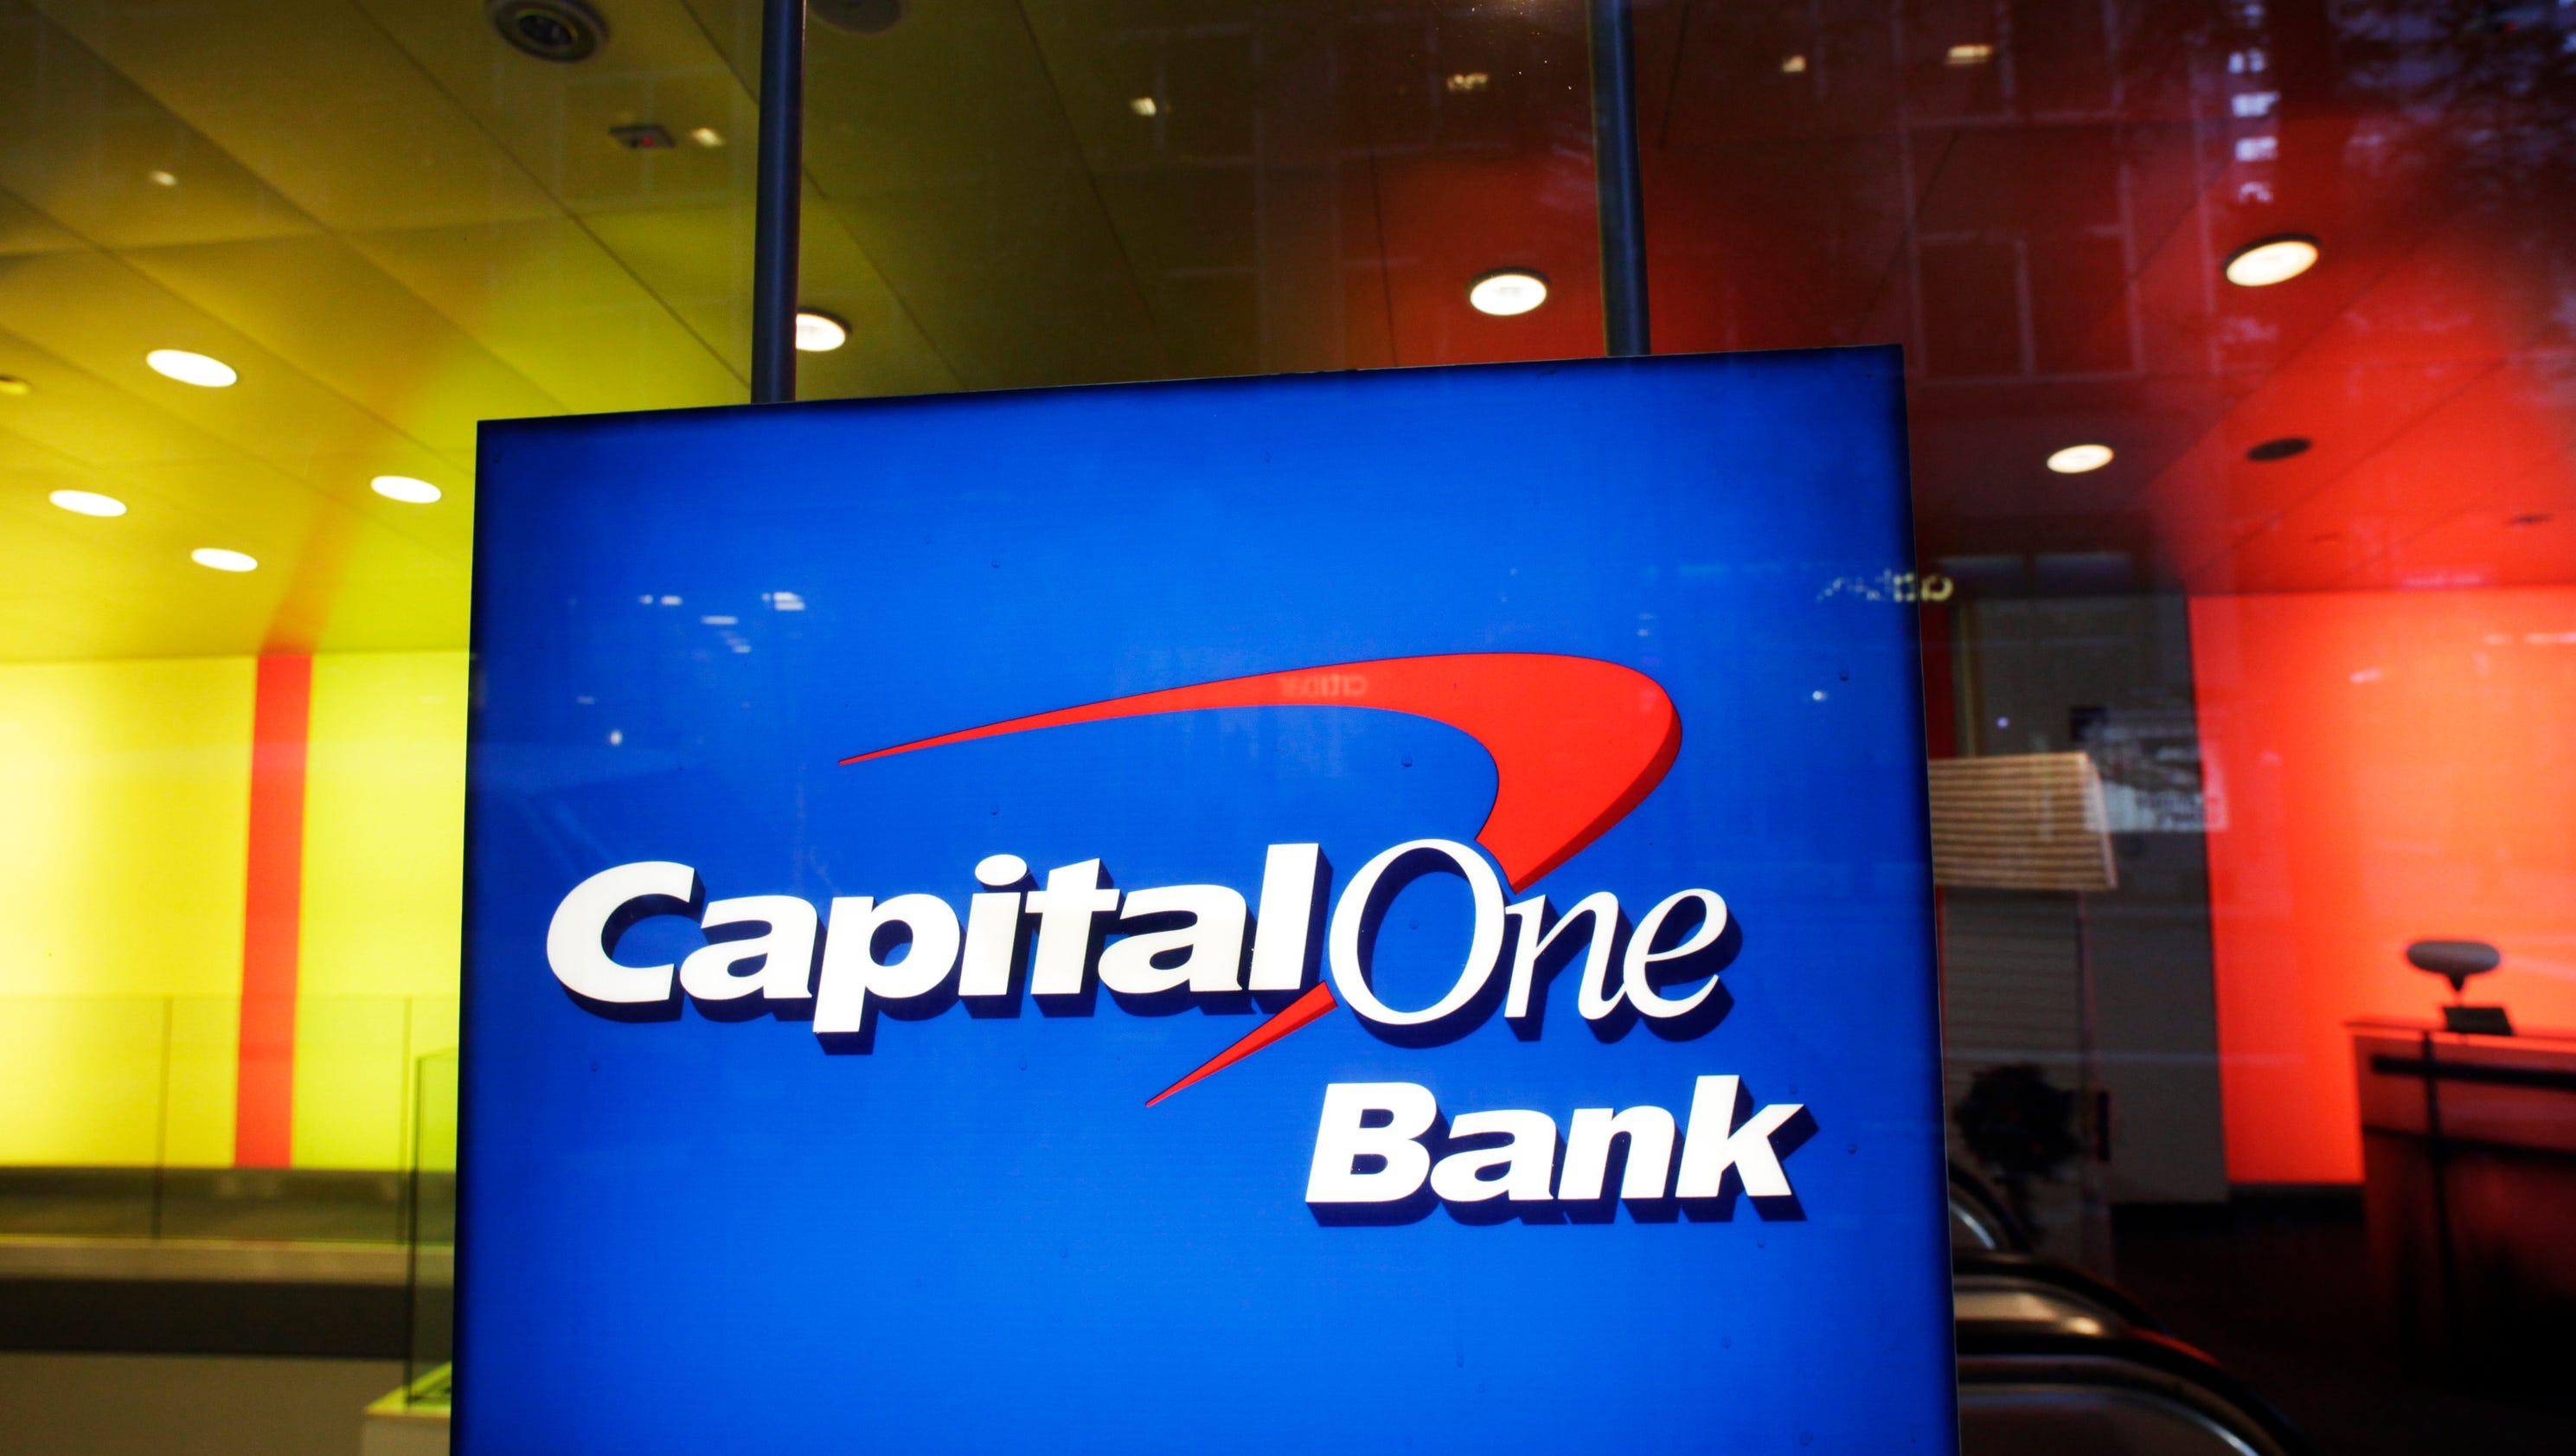 Capital One Intellix, the commercial treasury management portal enables you to stay connected and in control of cash balances, daily transactions and other important account information securely and .